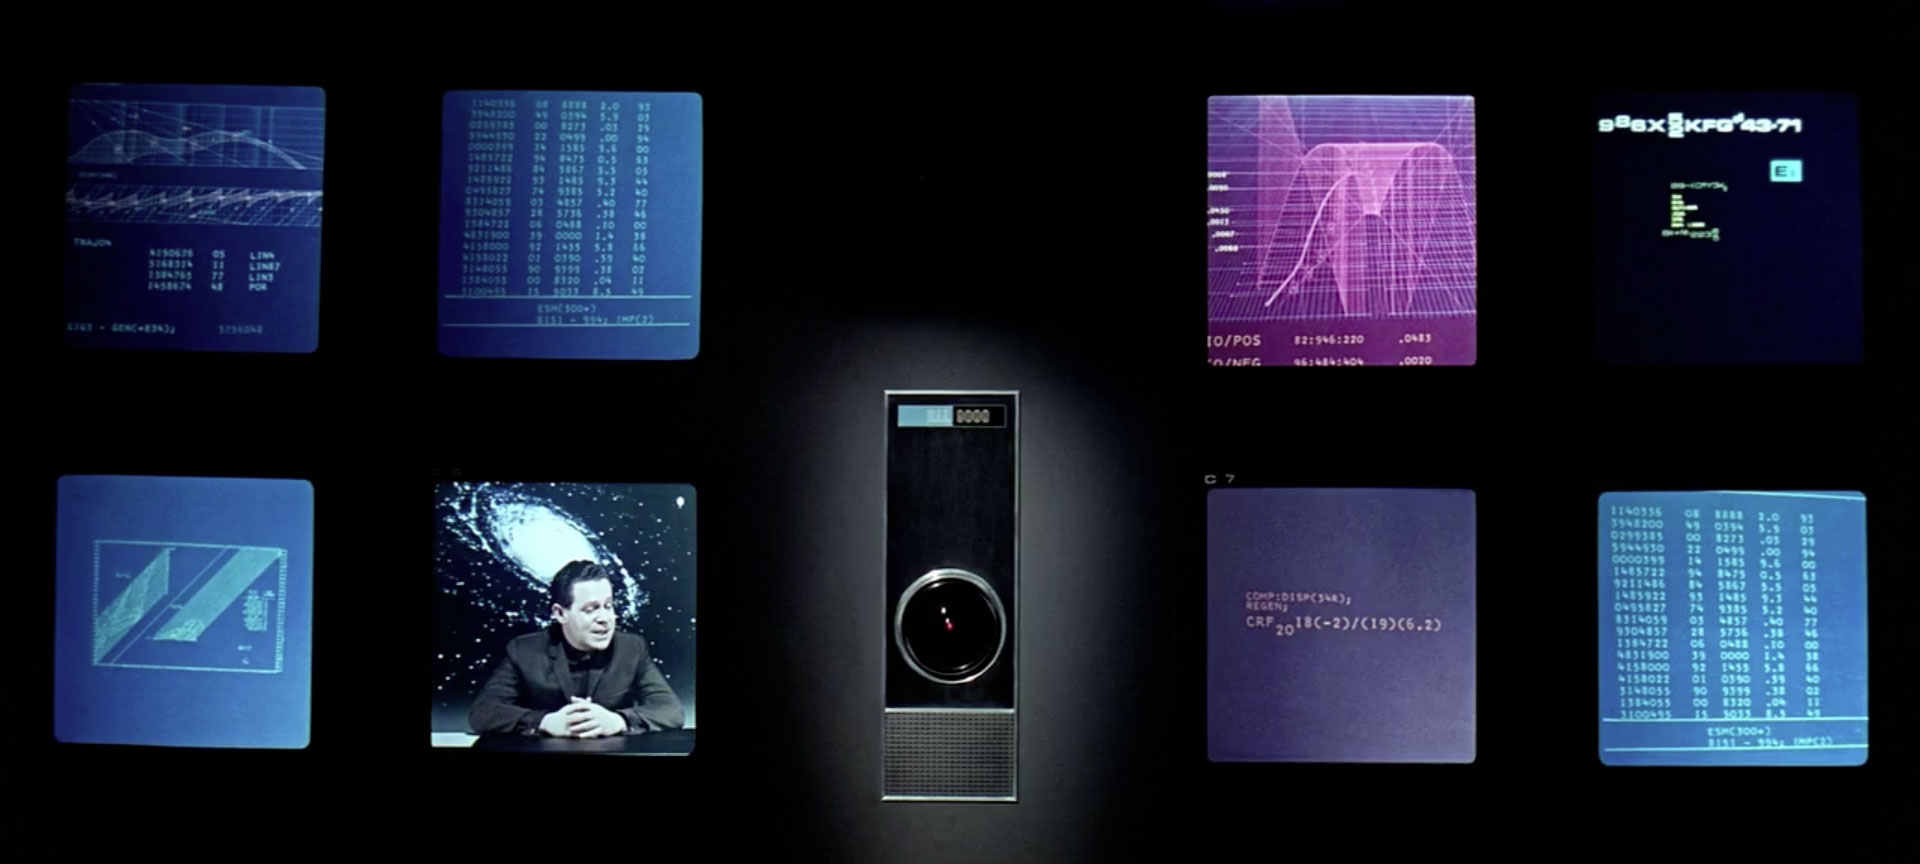 TV-wall-2001-Space-Odyssey.jpg